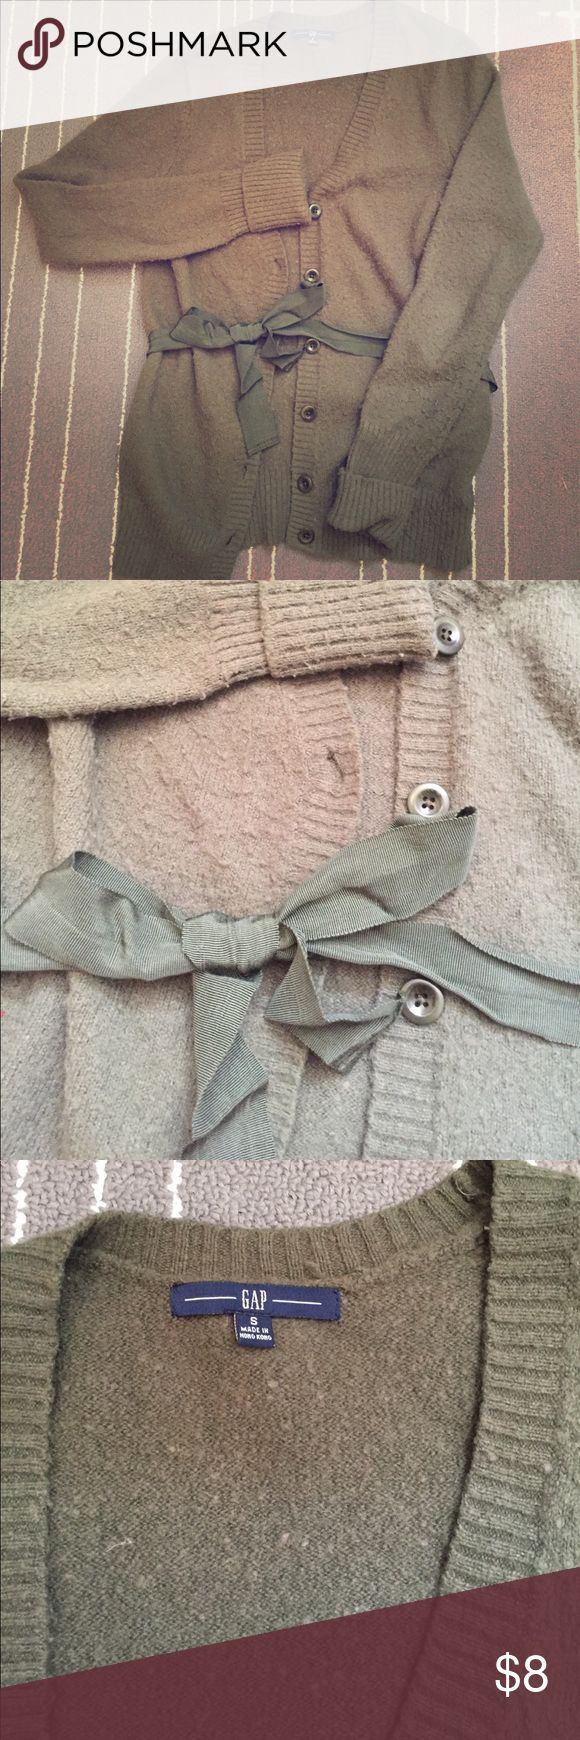 Olive green Gap cardigan with ribbon tie Soft and cozy olive green cardigan from Gap with v neck and buttons down with ribbon tie at waist. Falls hip height. Size small. GAP Sweaters Cardigans